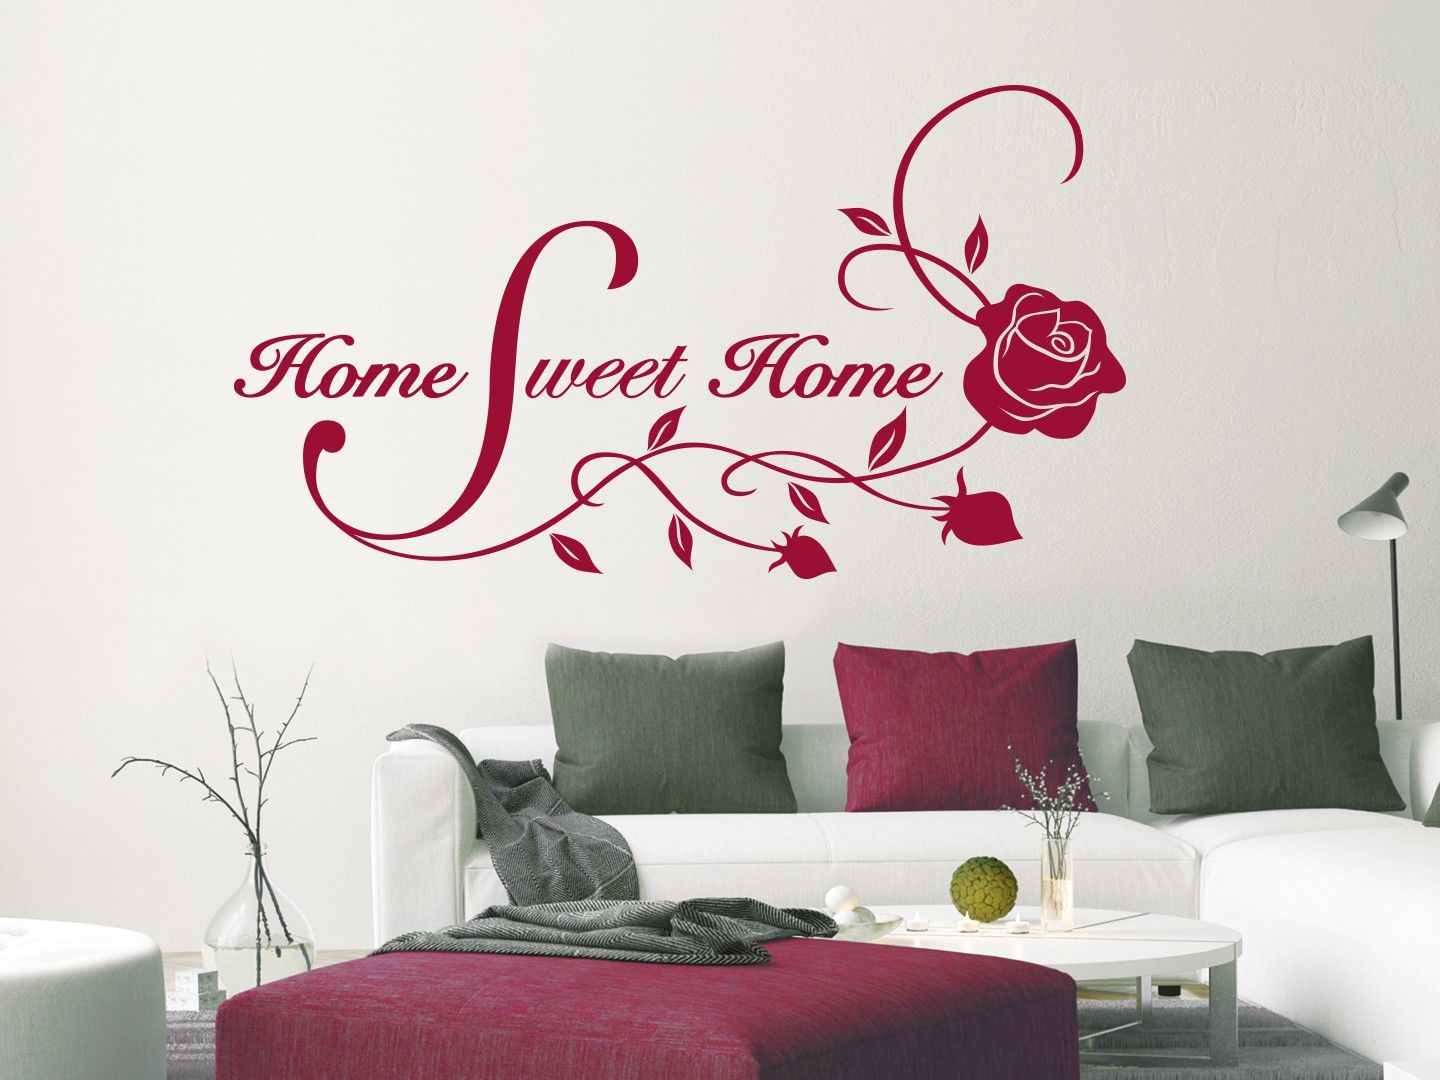 Wandtattoo Zuhause Ist Wandtattoo Home Sweet Home In 2019 Be Happy Wohnideen Nach Dem